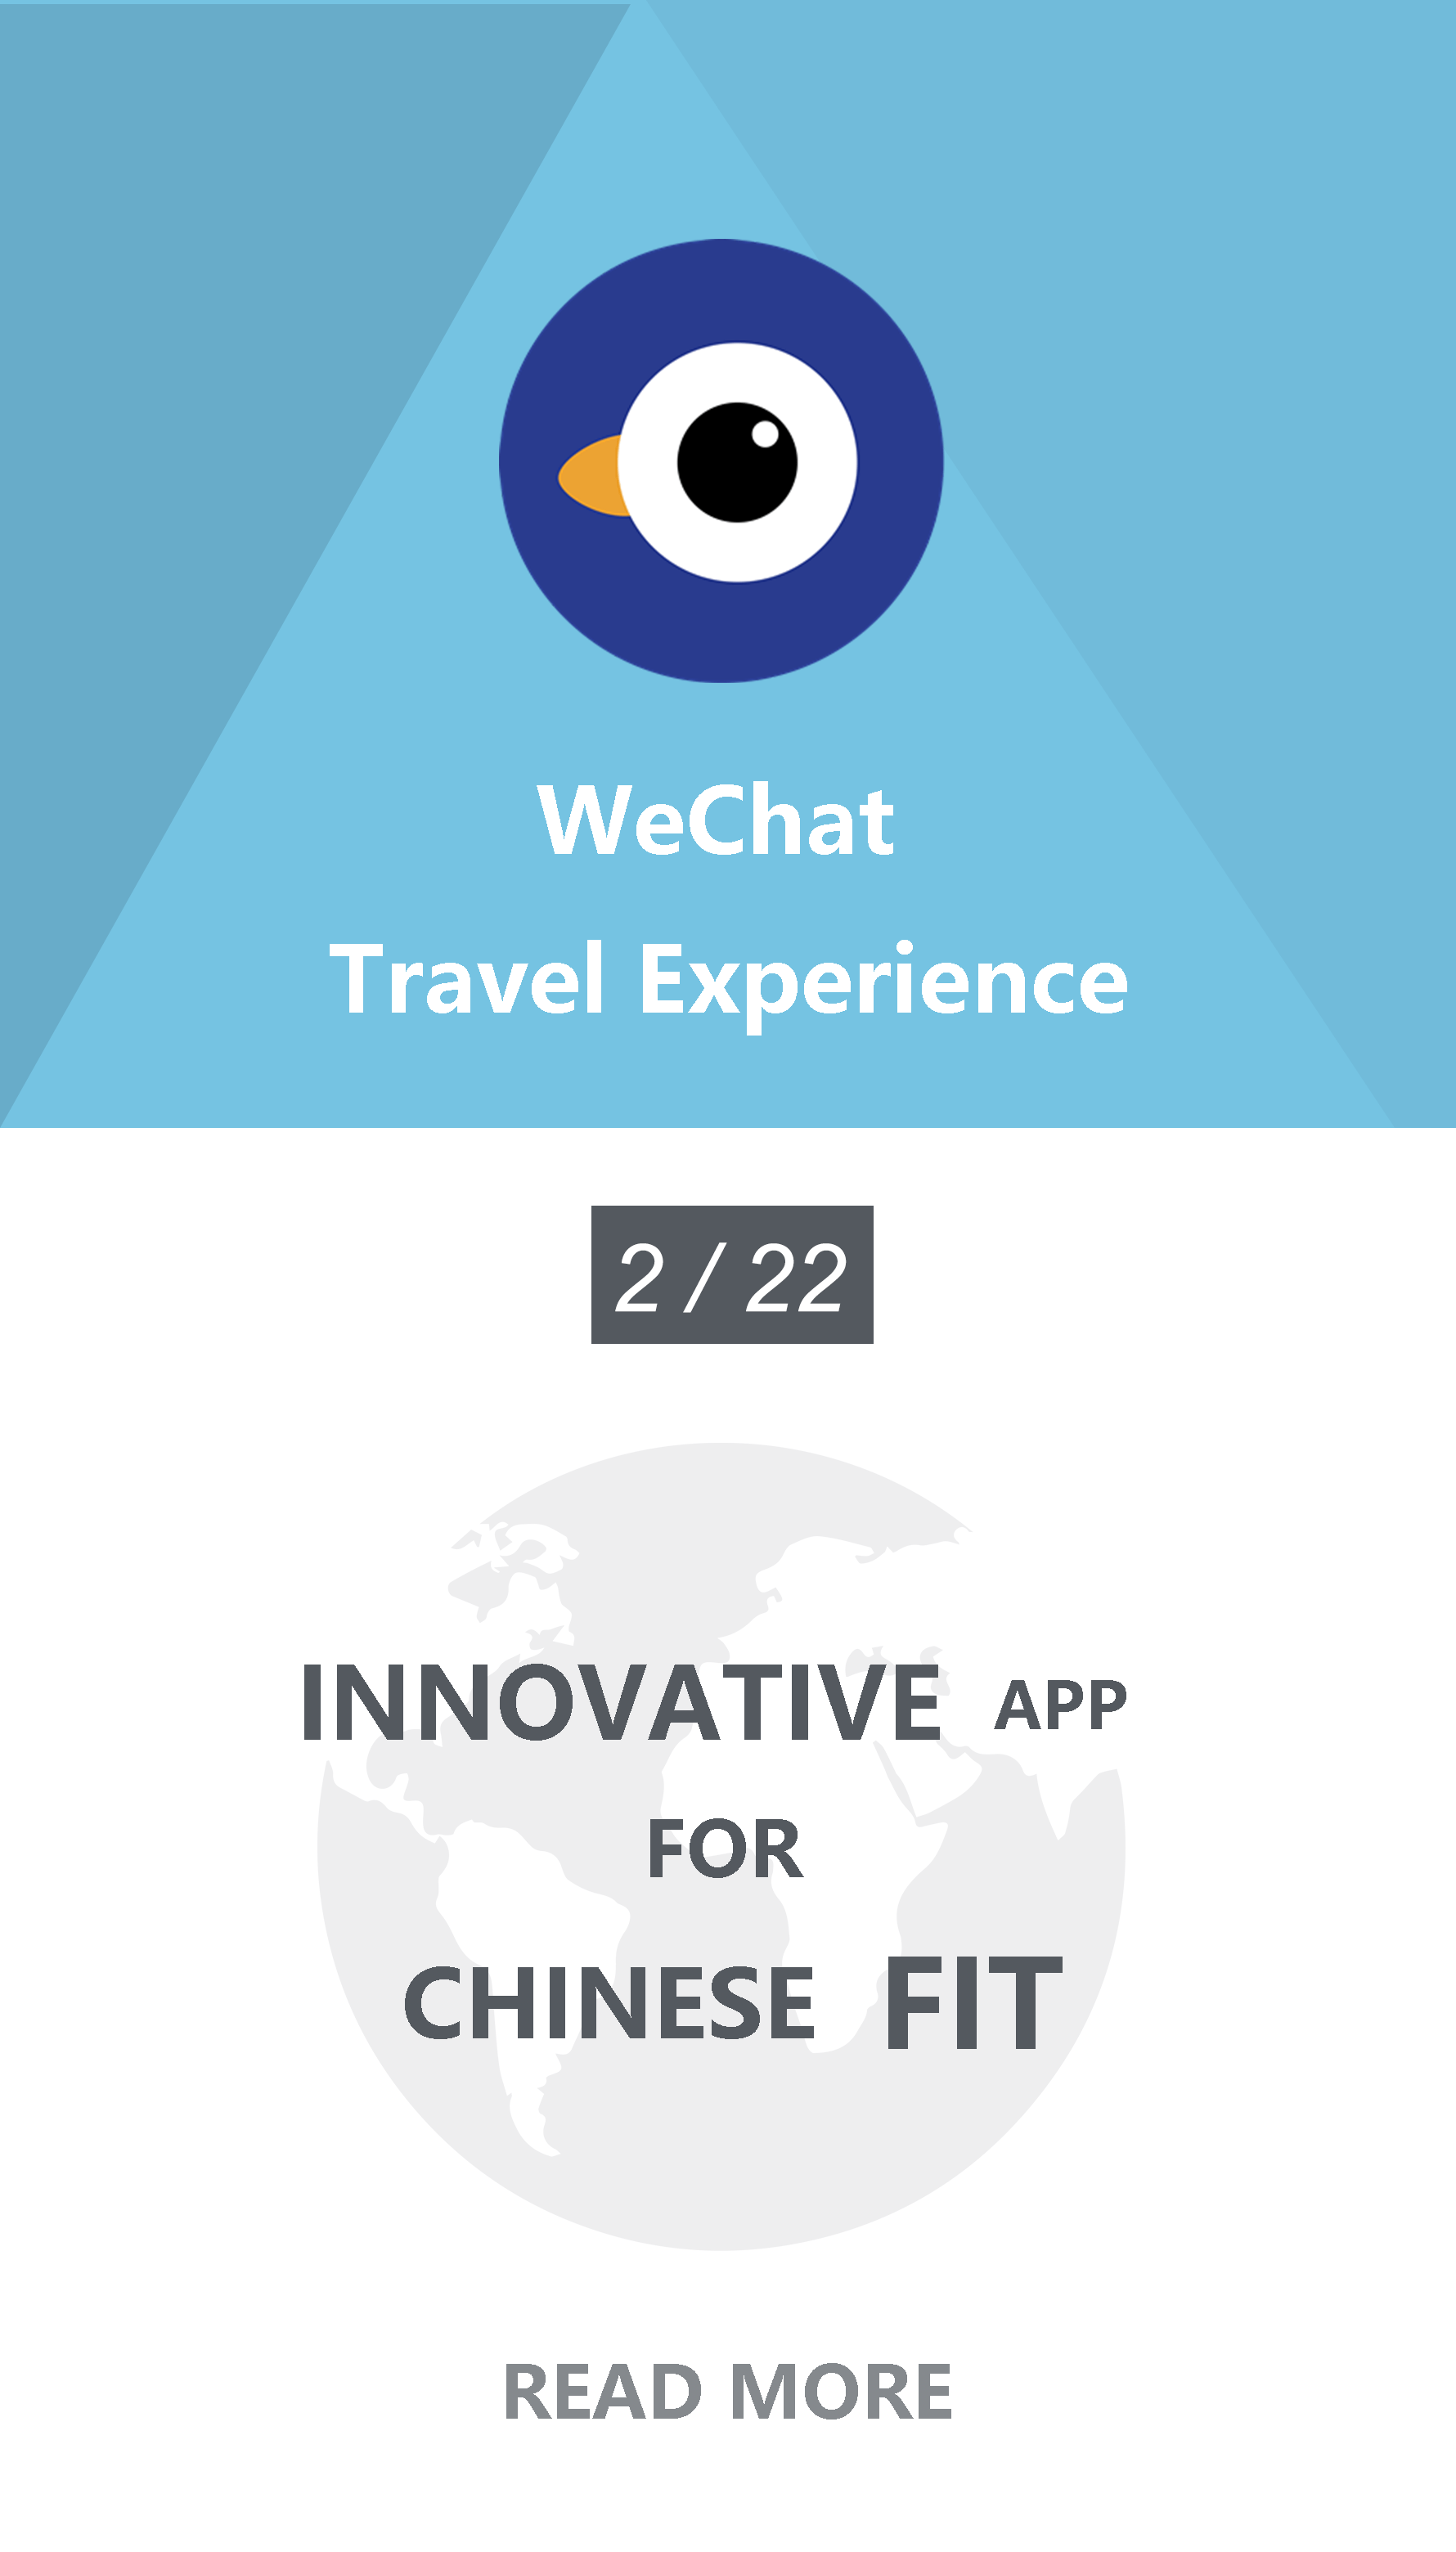 WeChat Travel Experience mini program, targeting Chinese traveller.